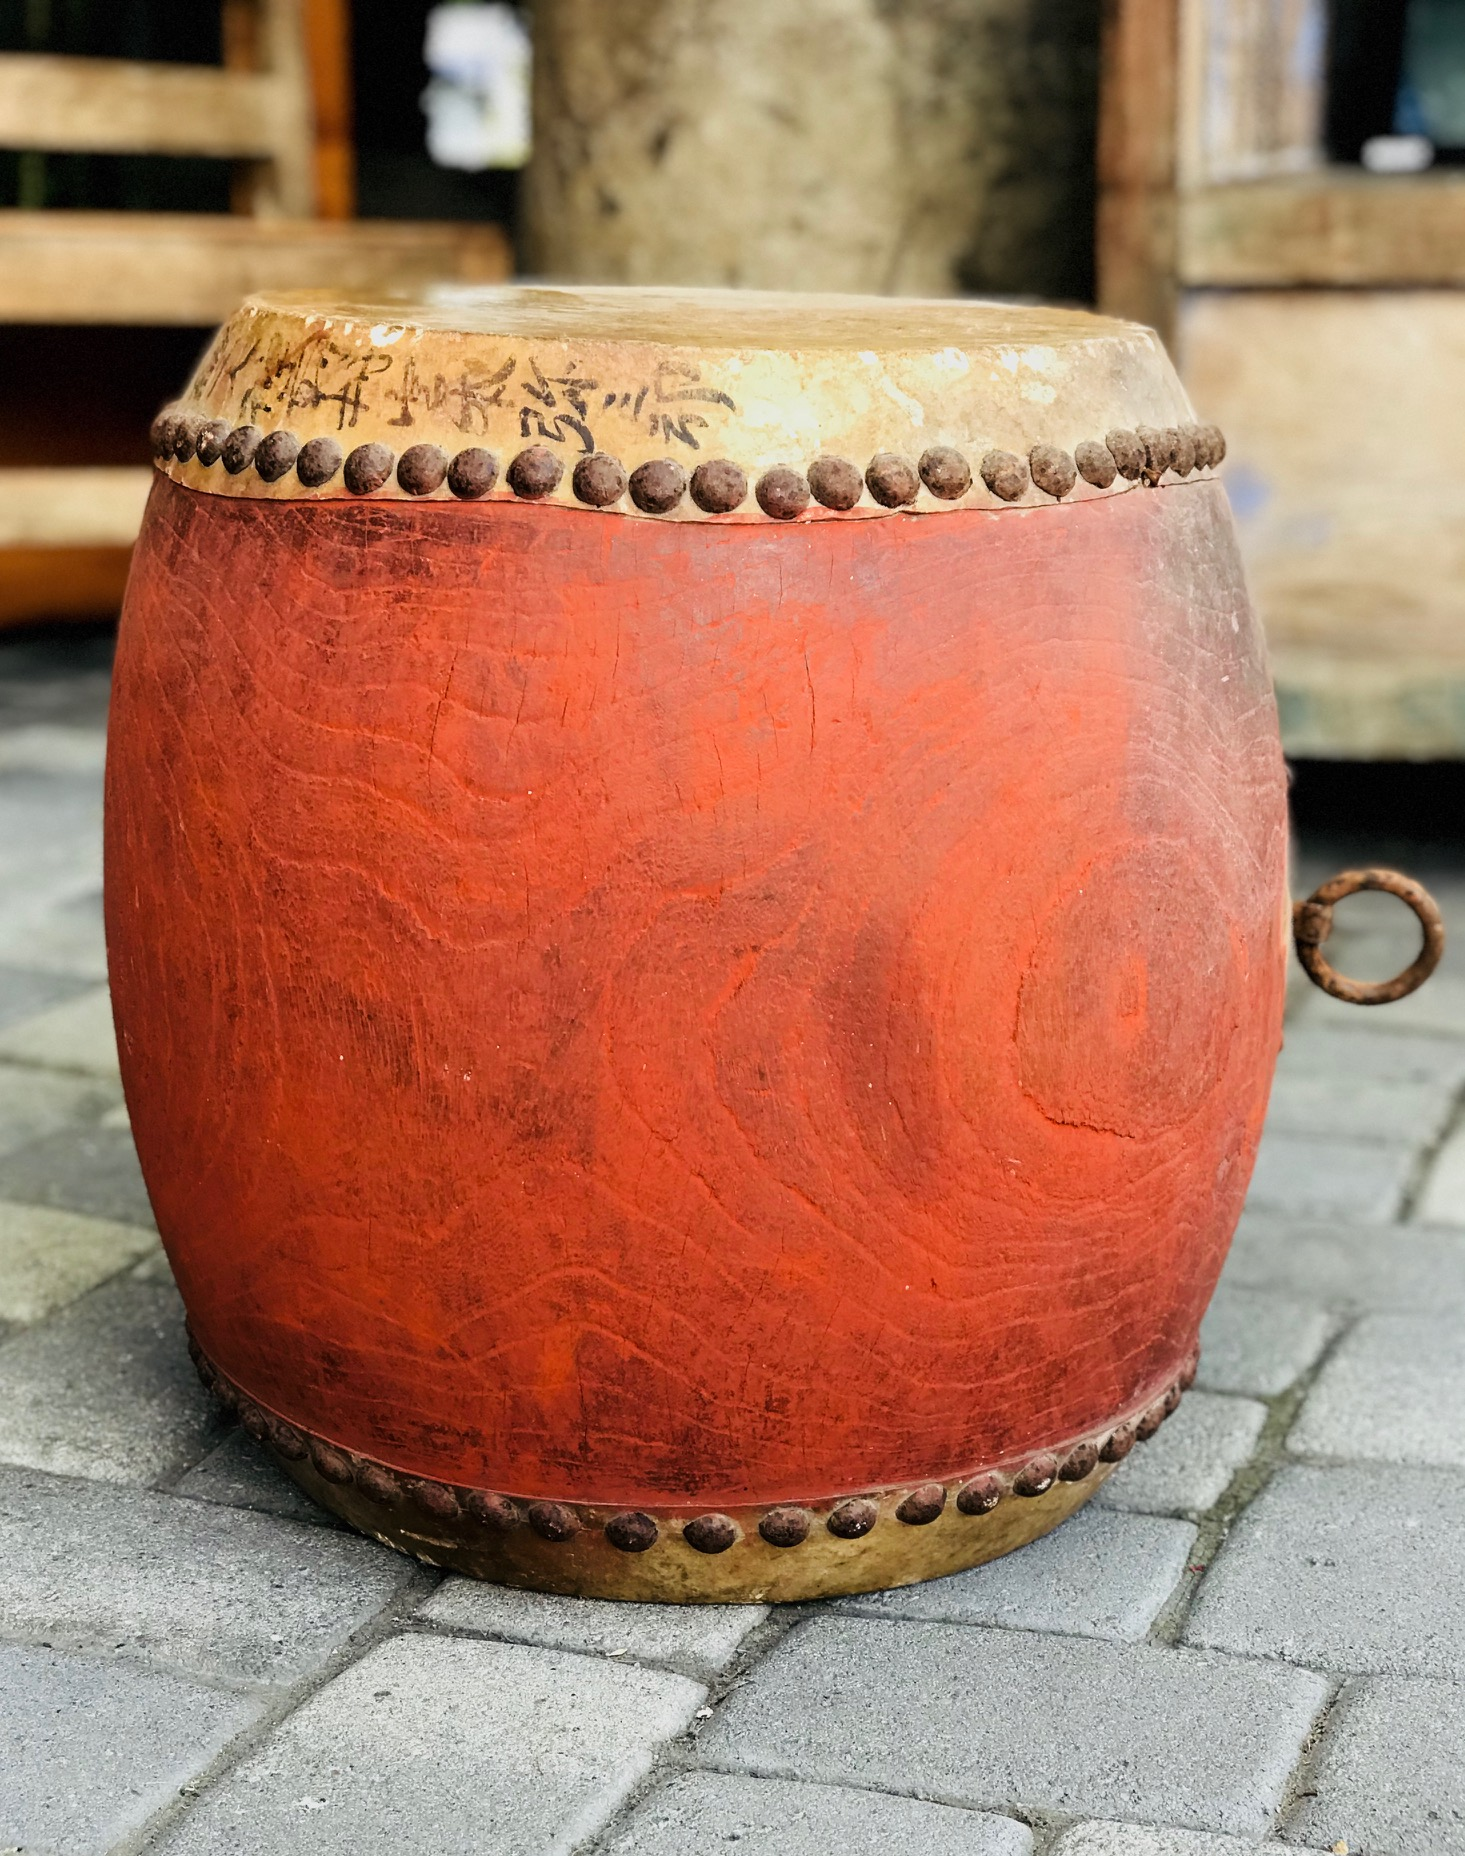 """Musical Instrument, Early 19th c Edo Period Taiko Style (tacked down) Japanese Drum, Keyaki wood (Japanese Red Elm), rawhde, red paint metal tacks, ink, 19"""" x 18"""", $1250.; thedavidalancollection.com , solana beach, ca"""